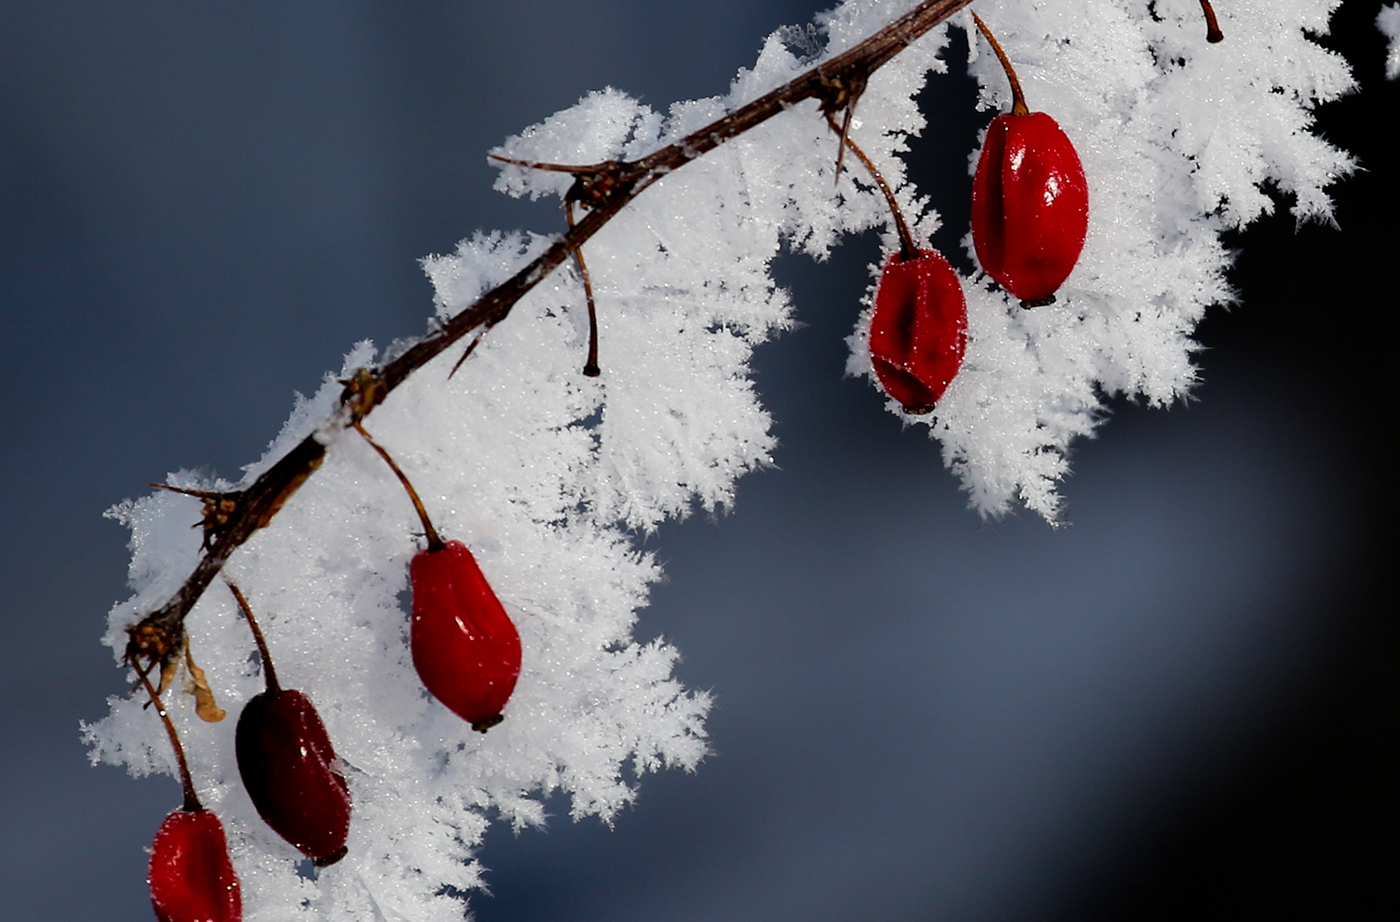 berries on branch in snow